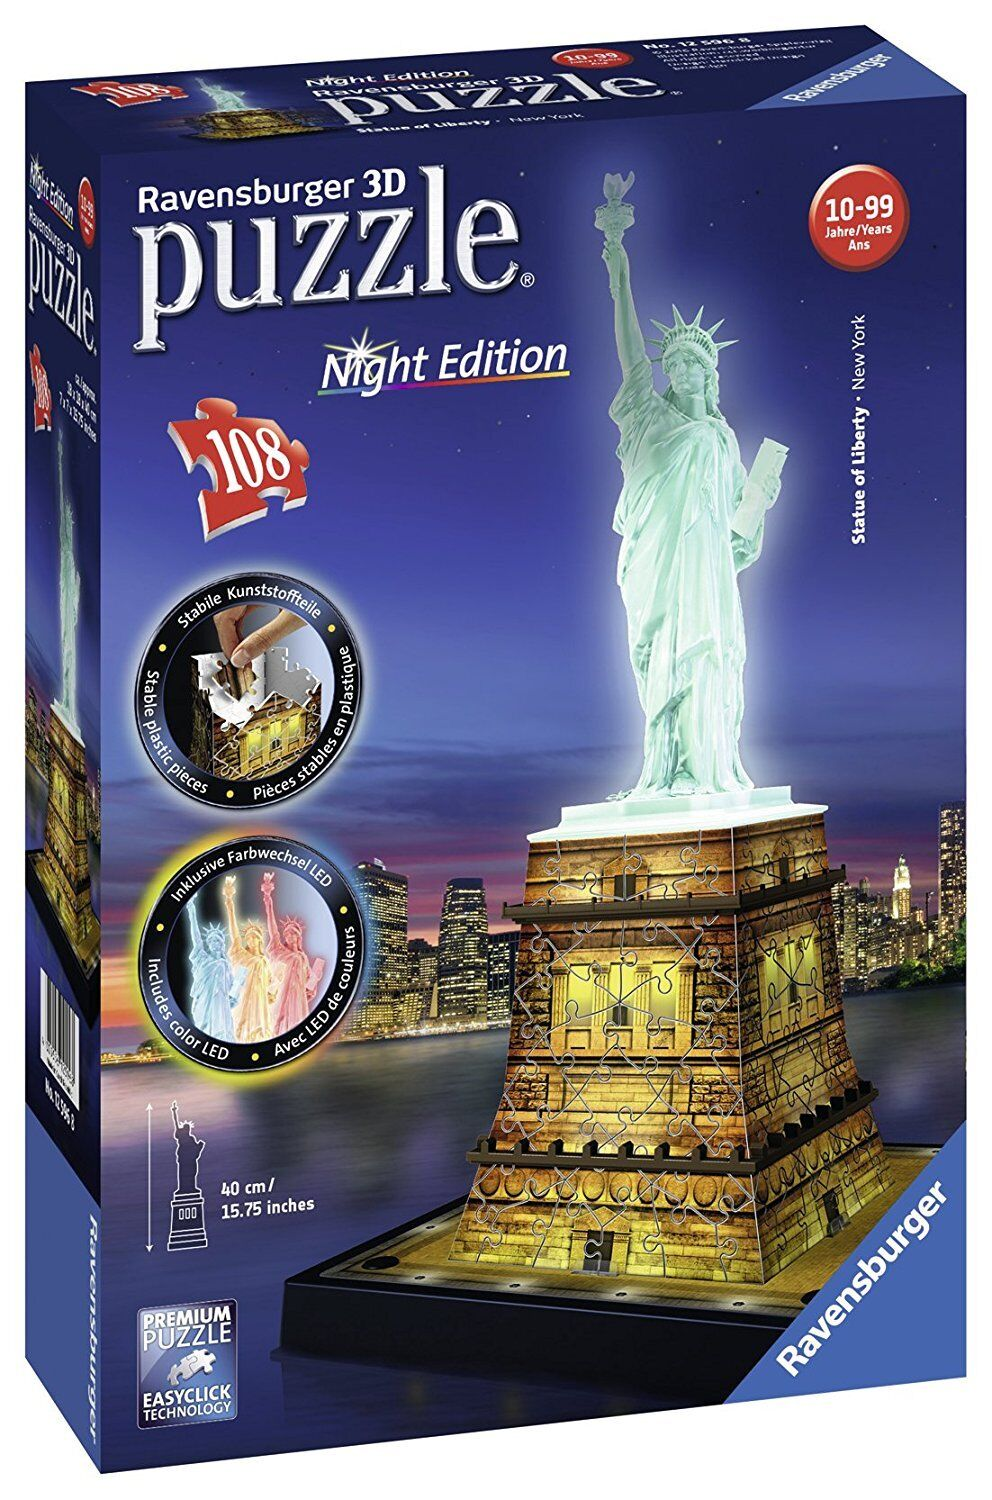 RAVENSBURGER STATUE OF LIBERTY NIGHT EDITION 3D PUZZLE 108 PC - NEW & SEALED